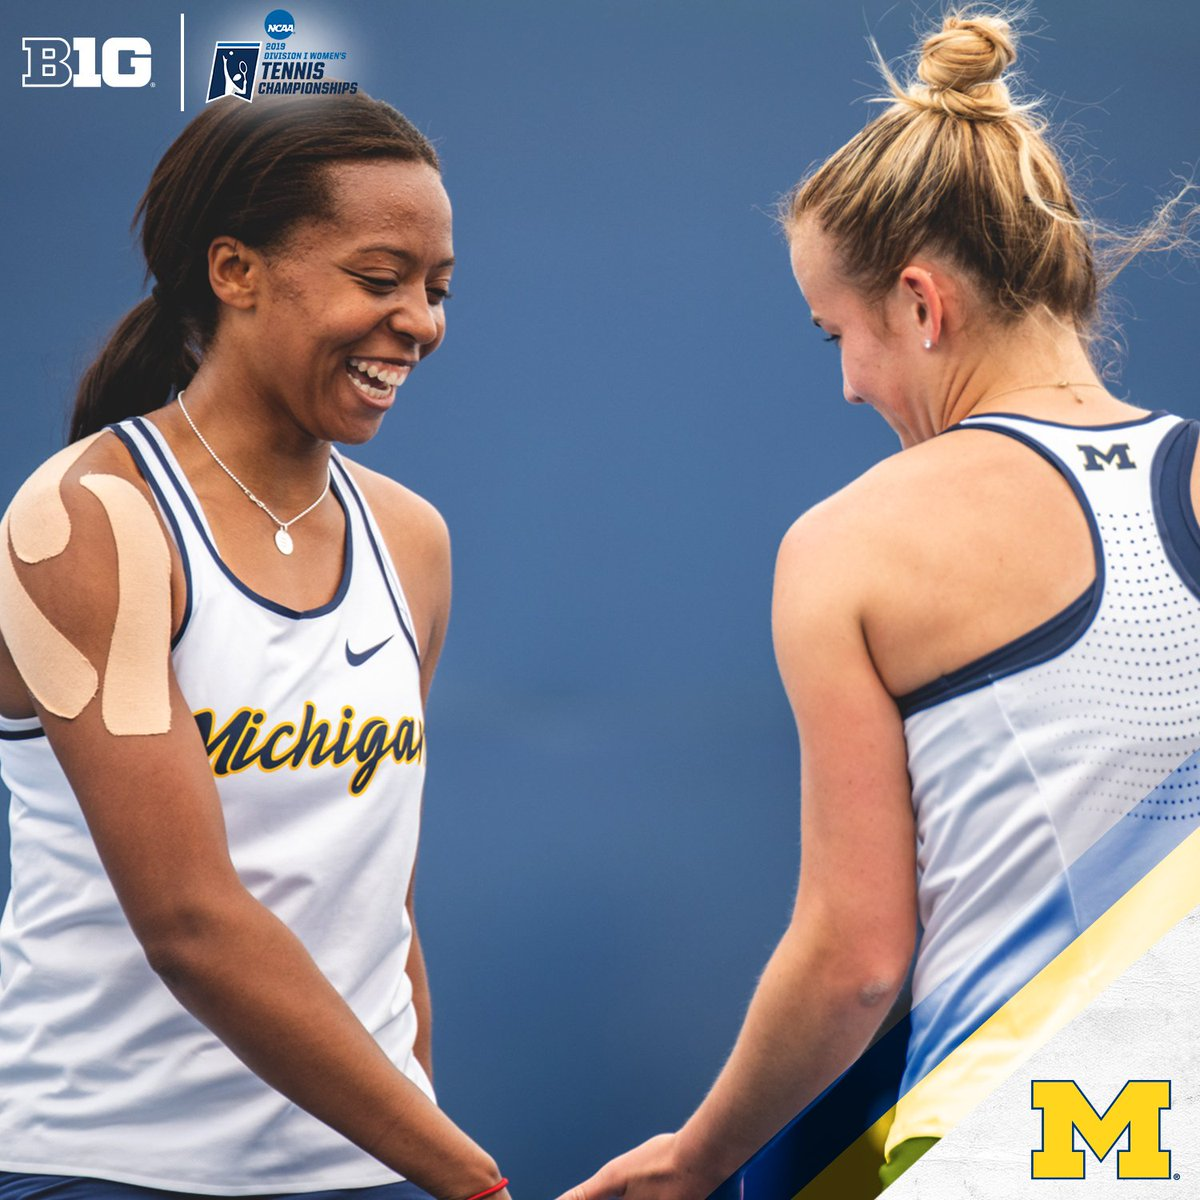 For the first time in @UMichWTennis history, doubles duo Kate Fahey and Brienne Minor will take the court for the 2019 @NCAATennis Tournament semifinals today in Orlando. #B1GWTennis